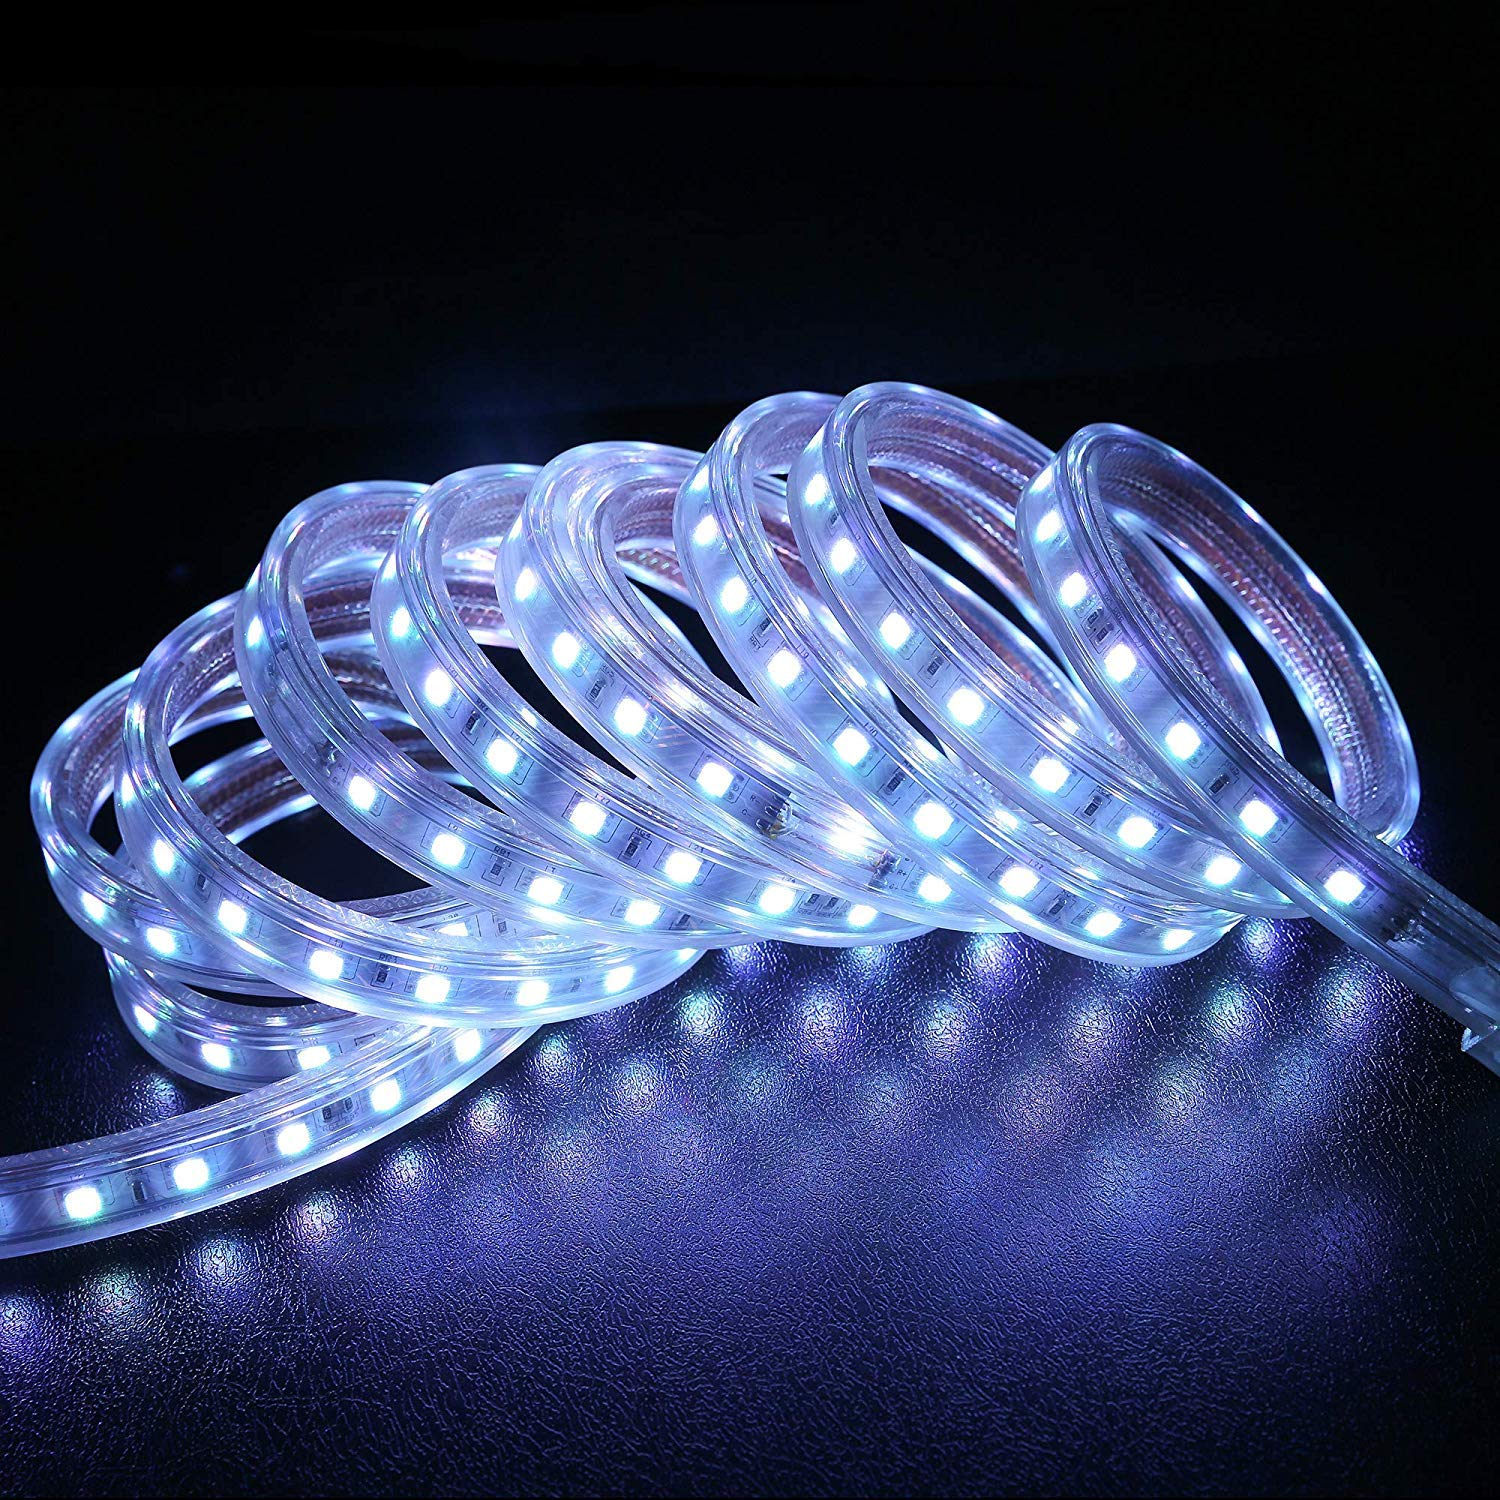 WYZworks SMD 5050 16 Colors LED Flexible Dimming Light Rope Strip Remote Controlled/IR Receiver - 100 Feet by WYZworks (Image #2)